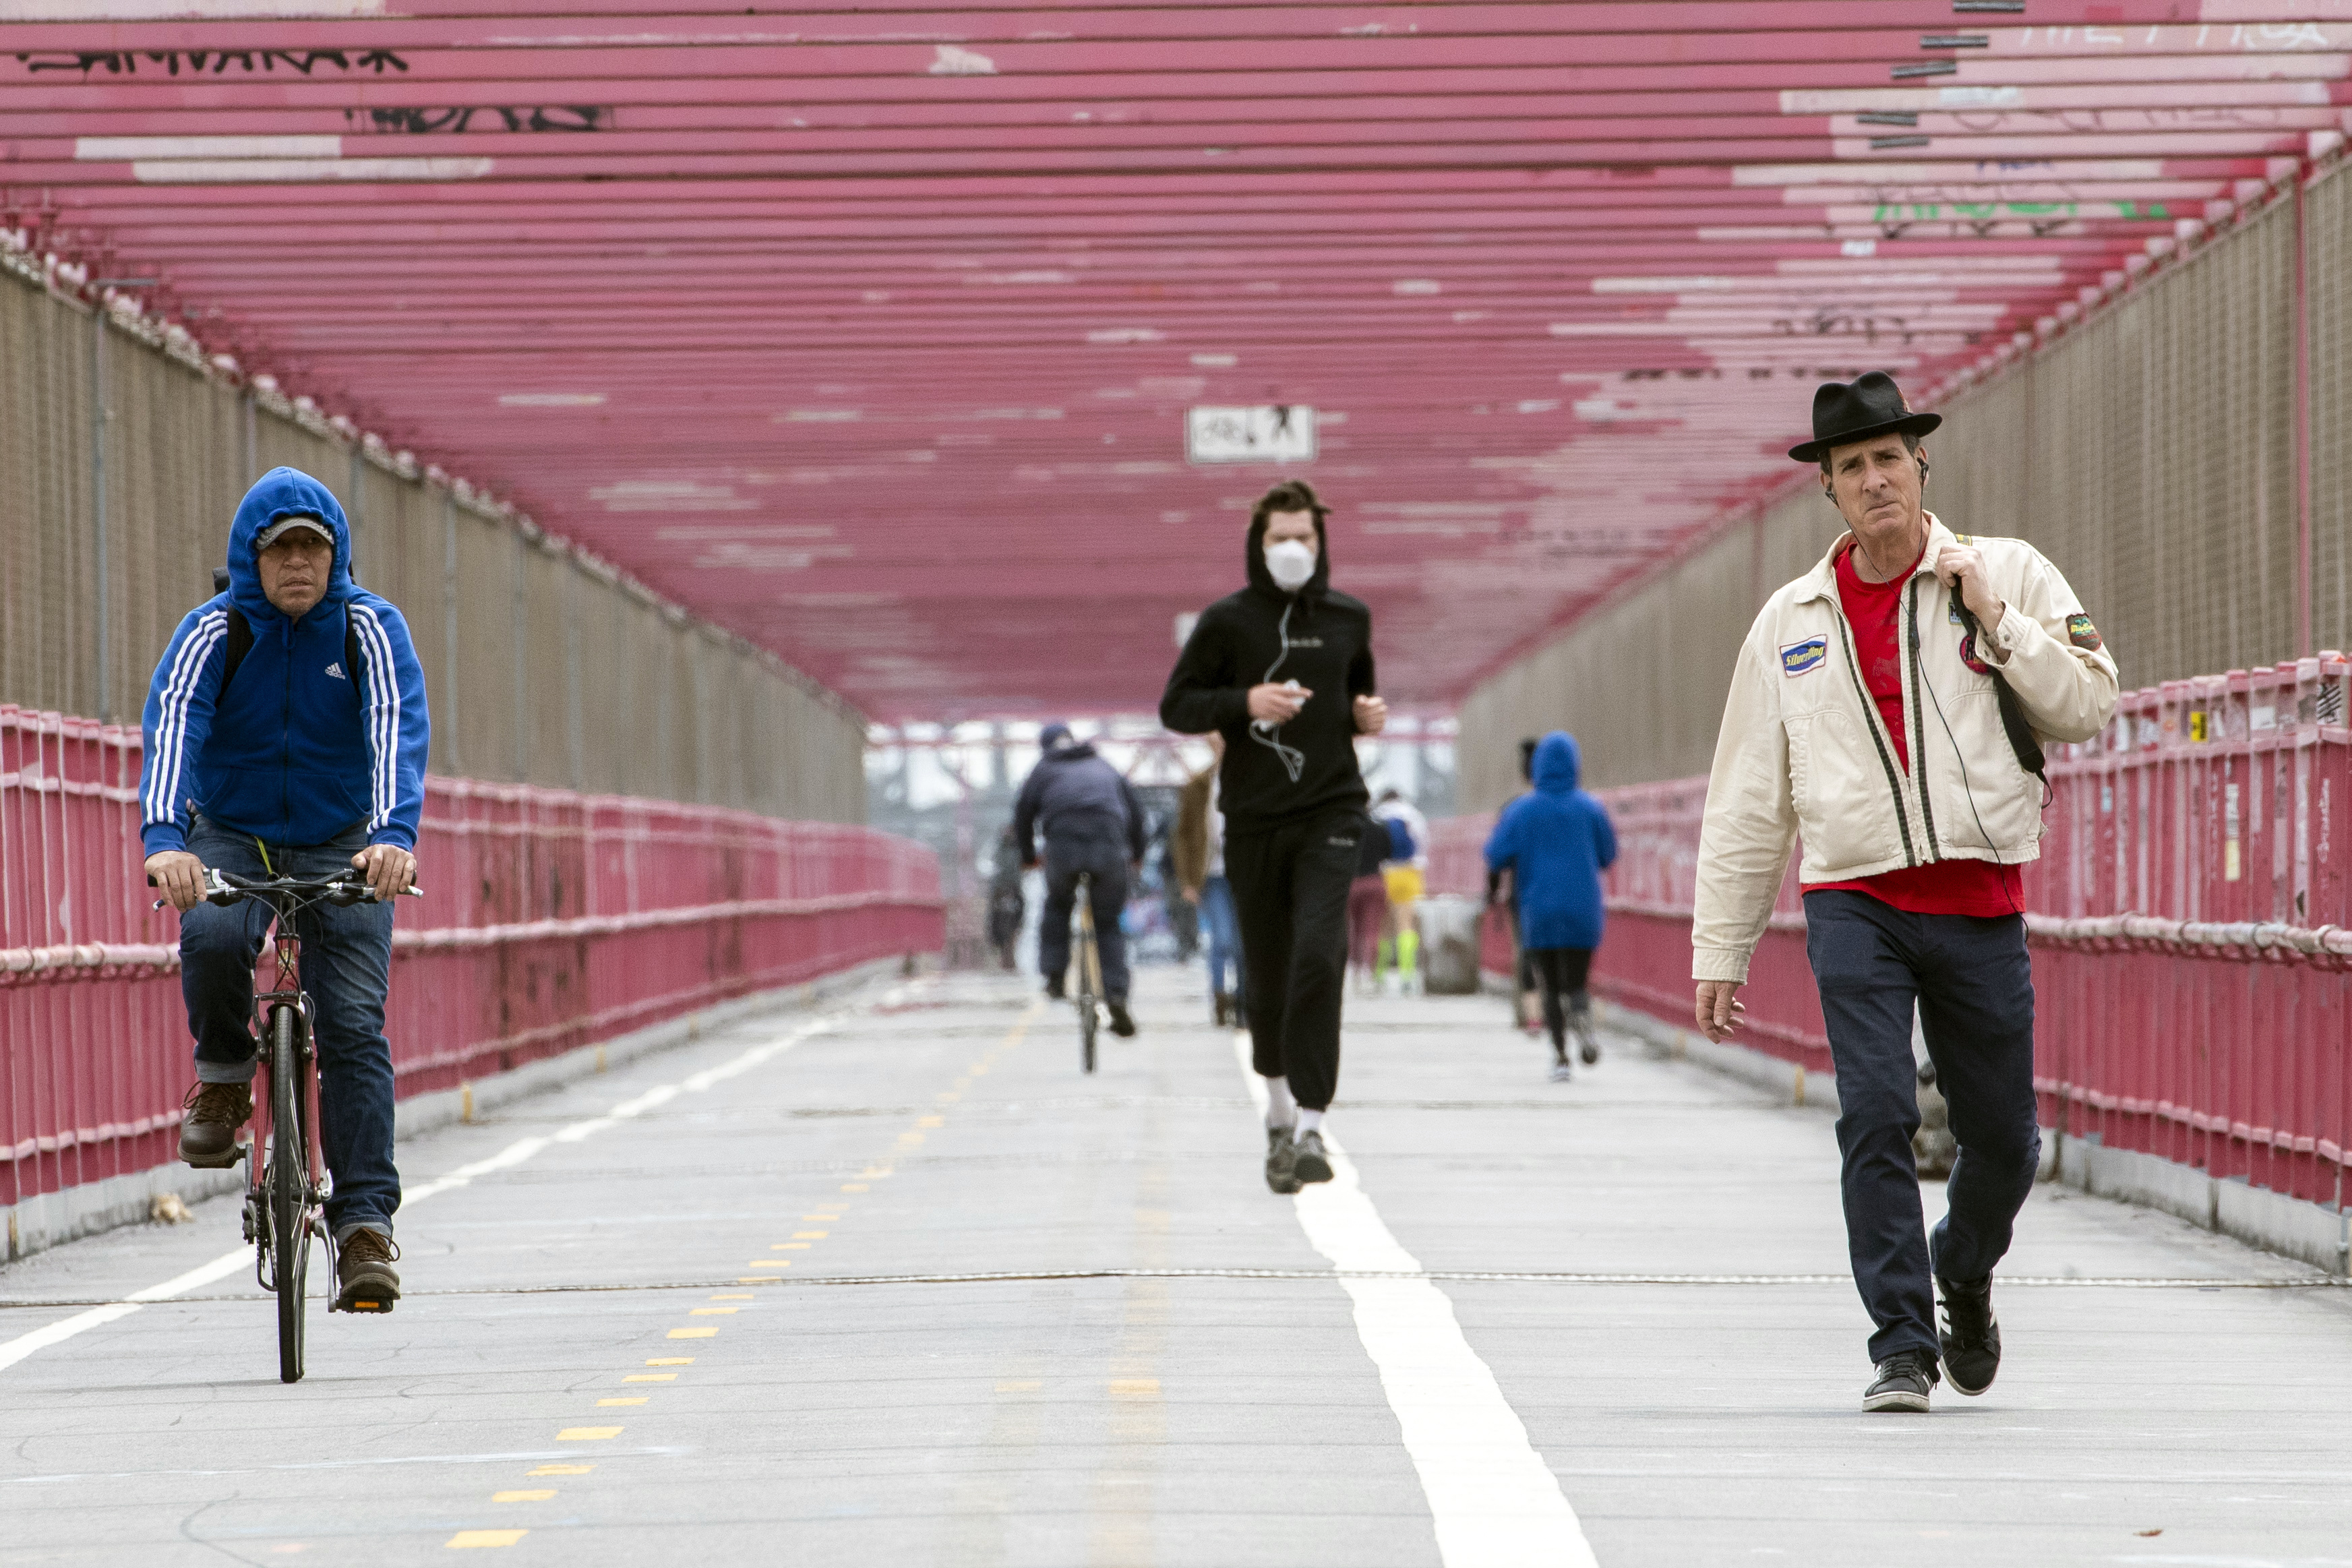 In this Monday, May 11, 2020 photo, a jogger wearing a face masks runs in between a biker and a pedestrian not wearing masks as they make their way over the Williamsburg bridge in New York.New York's governor has ordered masks for anyone out in public who can't stay at least six feet away from other people. Yet, while the rule is clear, New Yorkers have adopted their own interpretation of exactly when masks are required, especially outdoors. Photo: AP